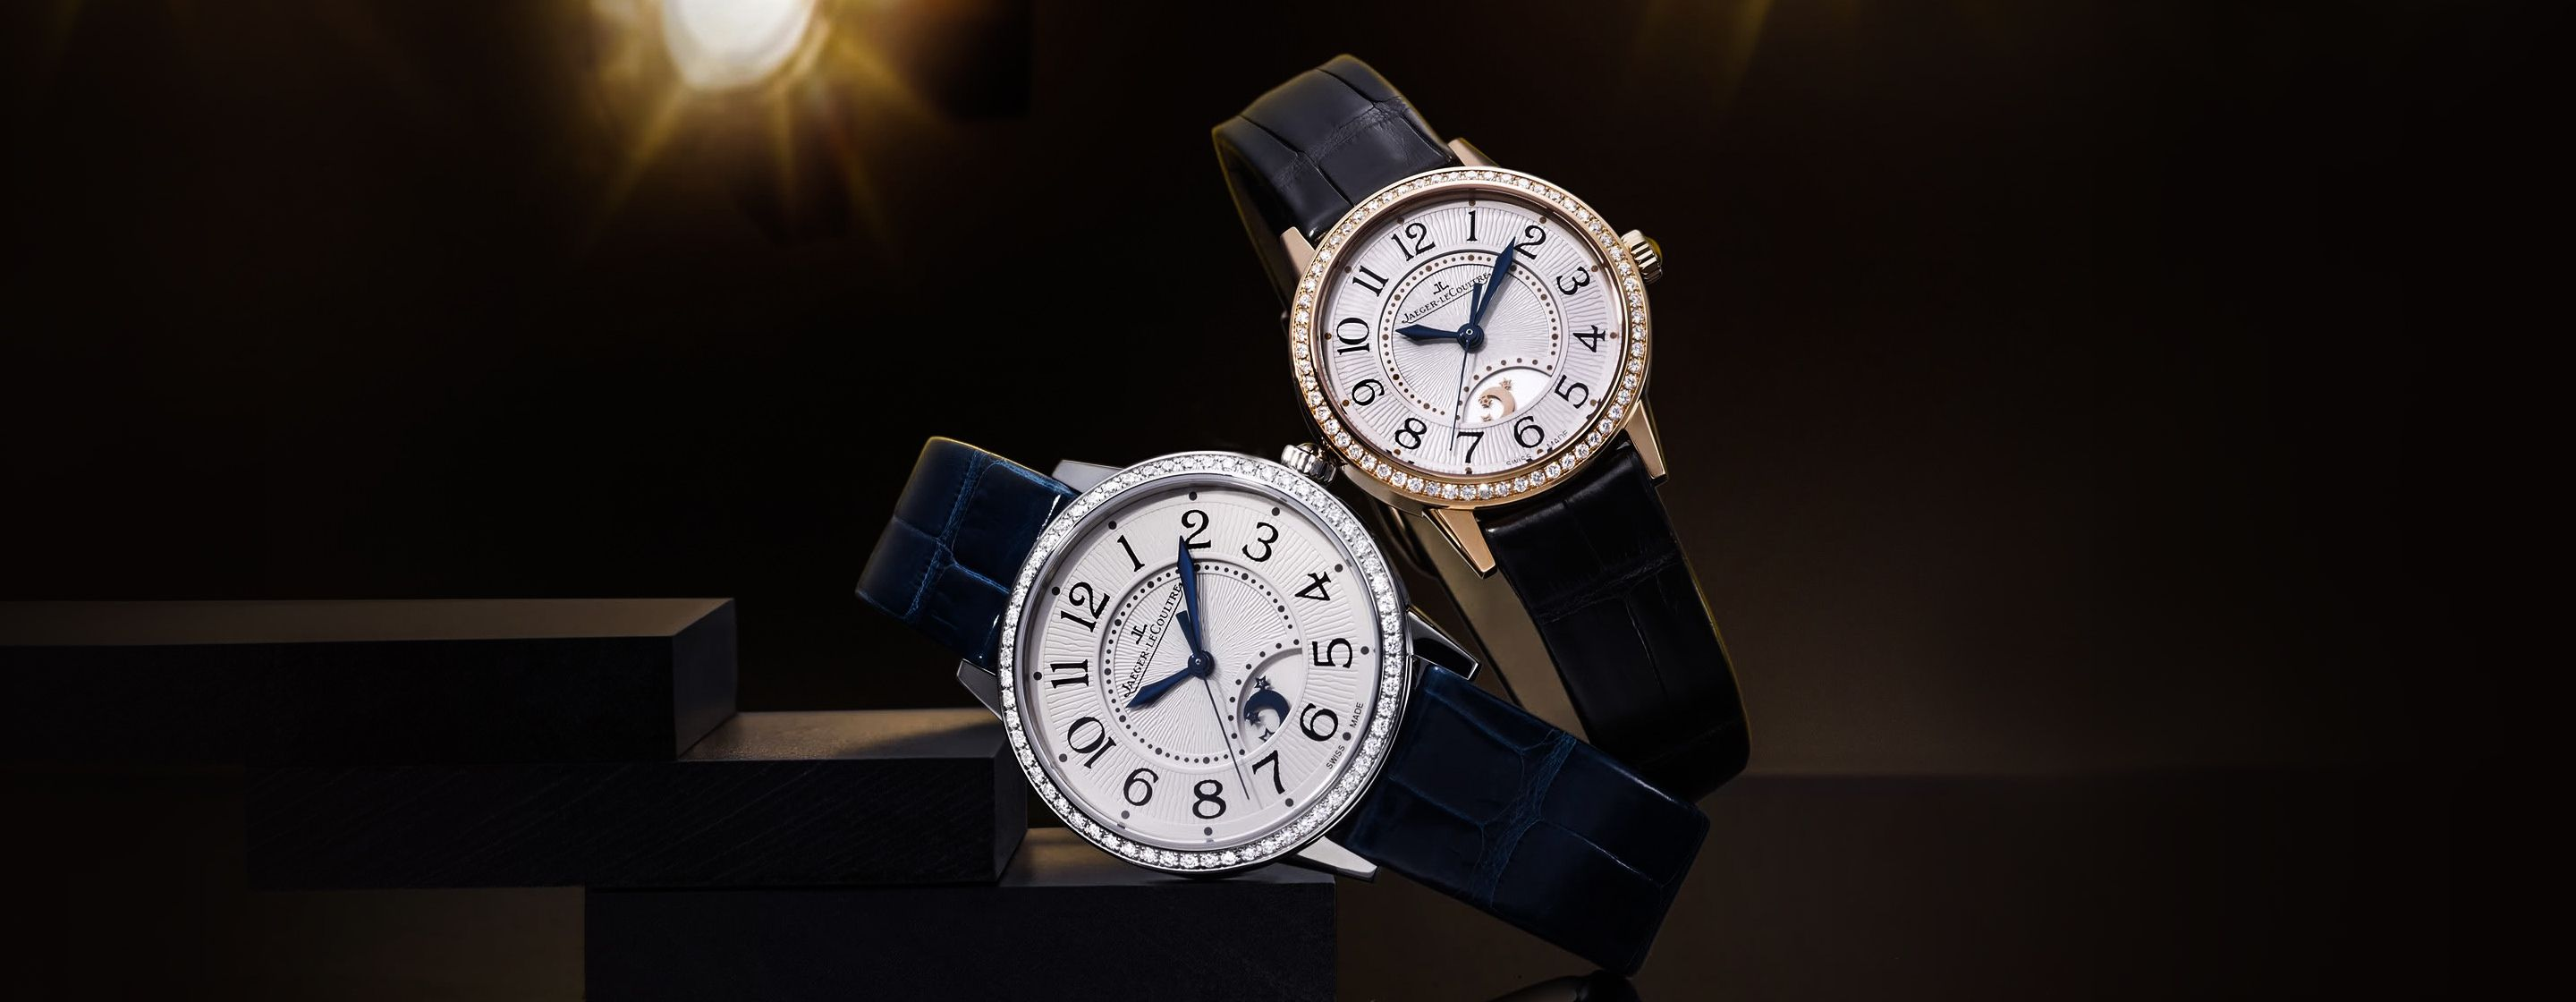 530ca592d31f81 Round-Up15 Watch Brands That Define Luxury In India – Highest To Lowest In  Price